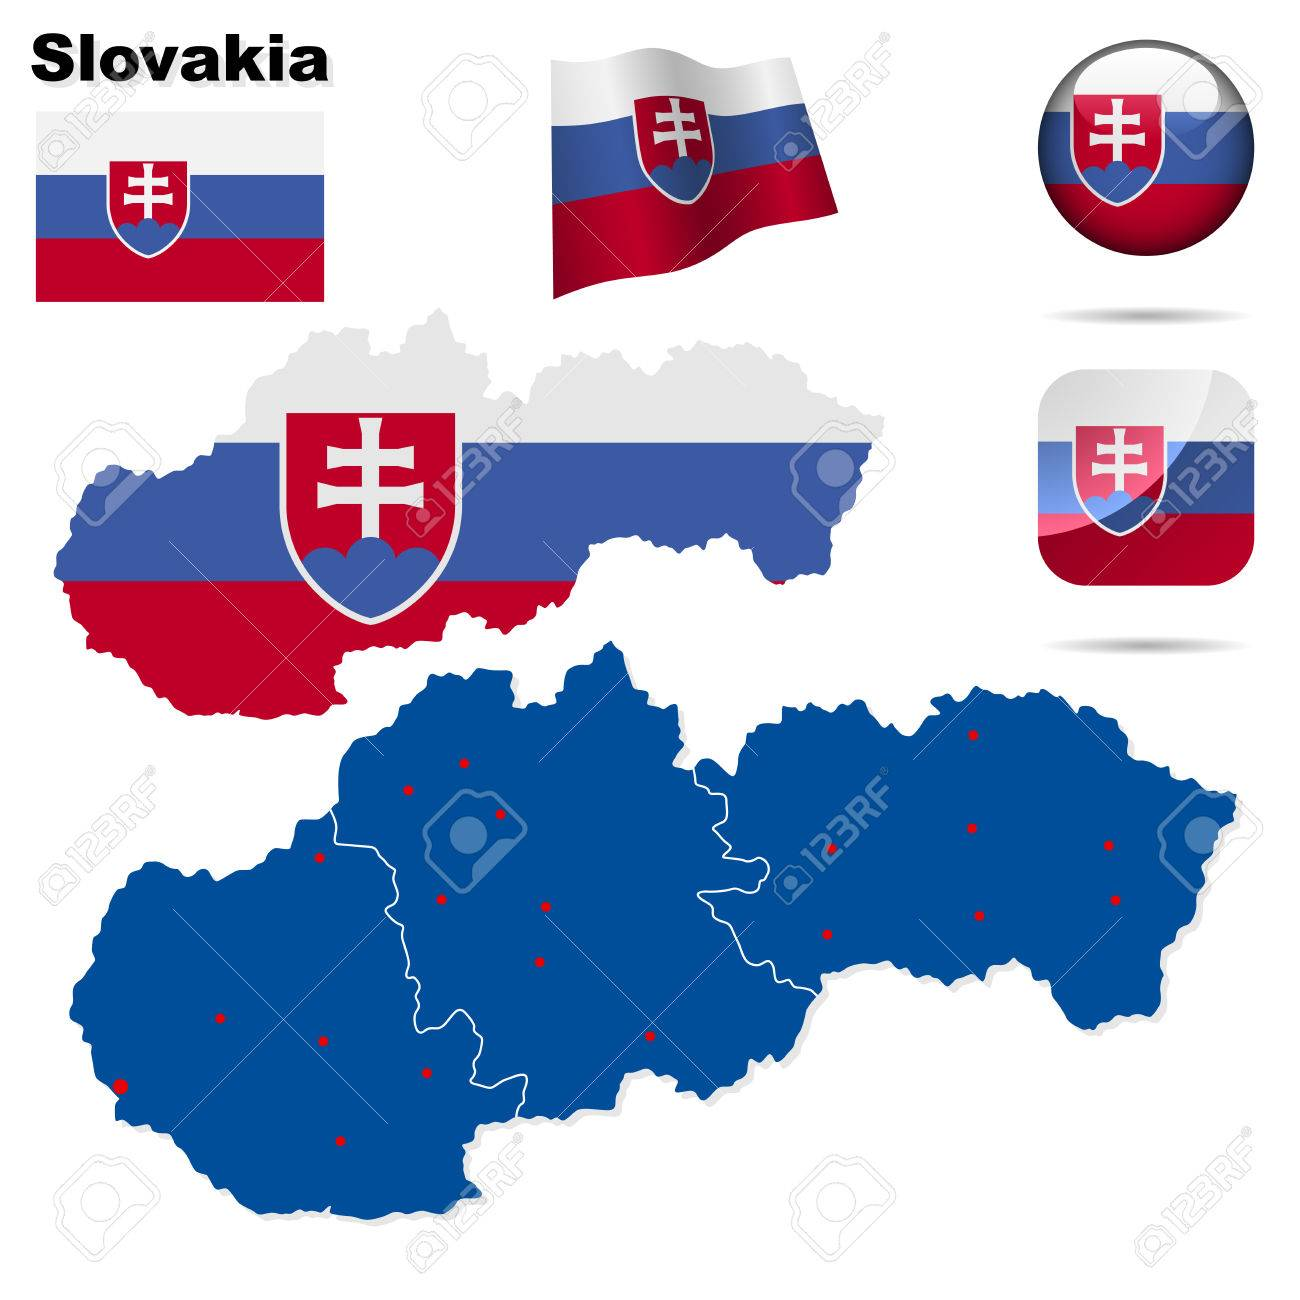 Slovakia   set. Detailed country shape with region borders, flags and icons isolated on white background. Stock Vector - 7180025